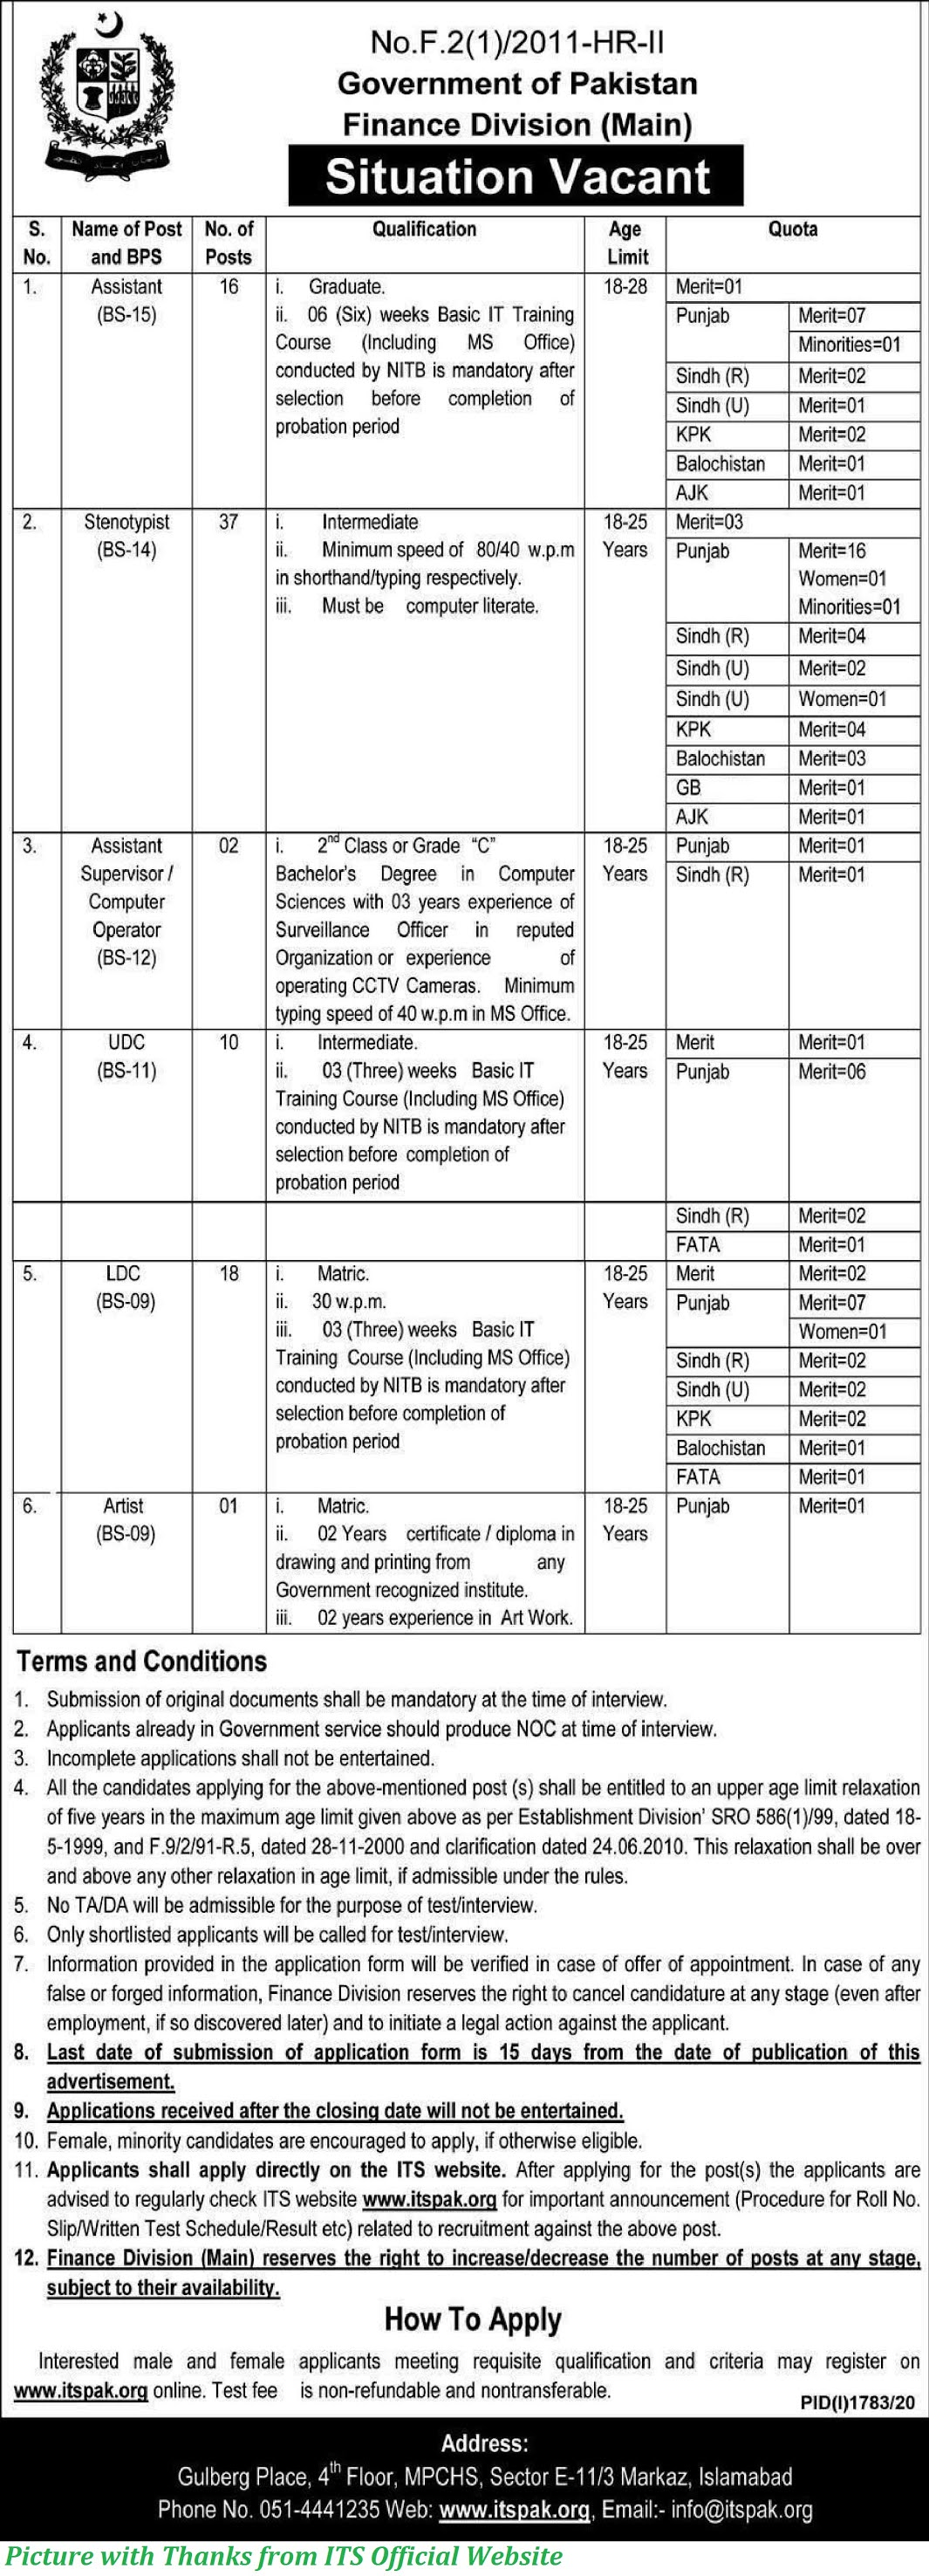 Finance Division Ministry of Finance Jobs 2020 - Latest Jobs in Finance Division 2020 Apply Online